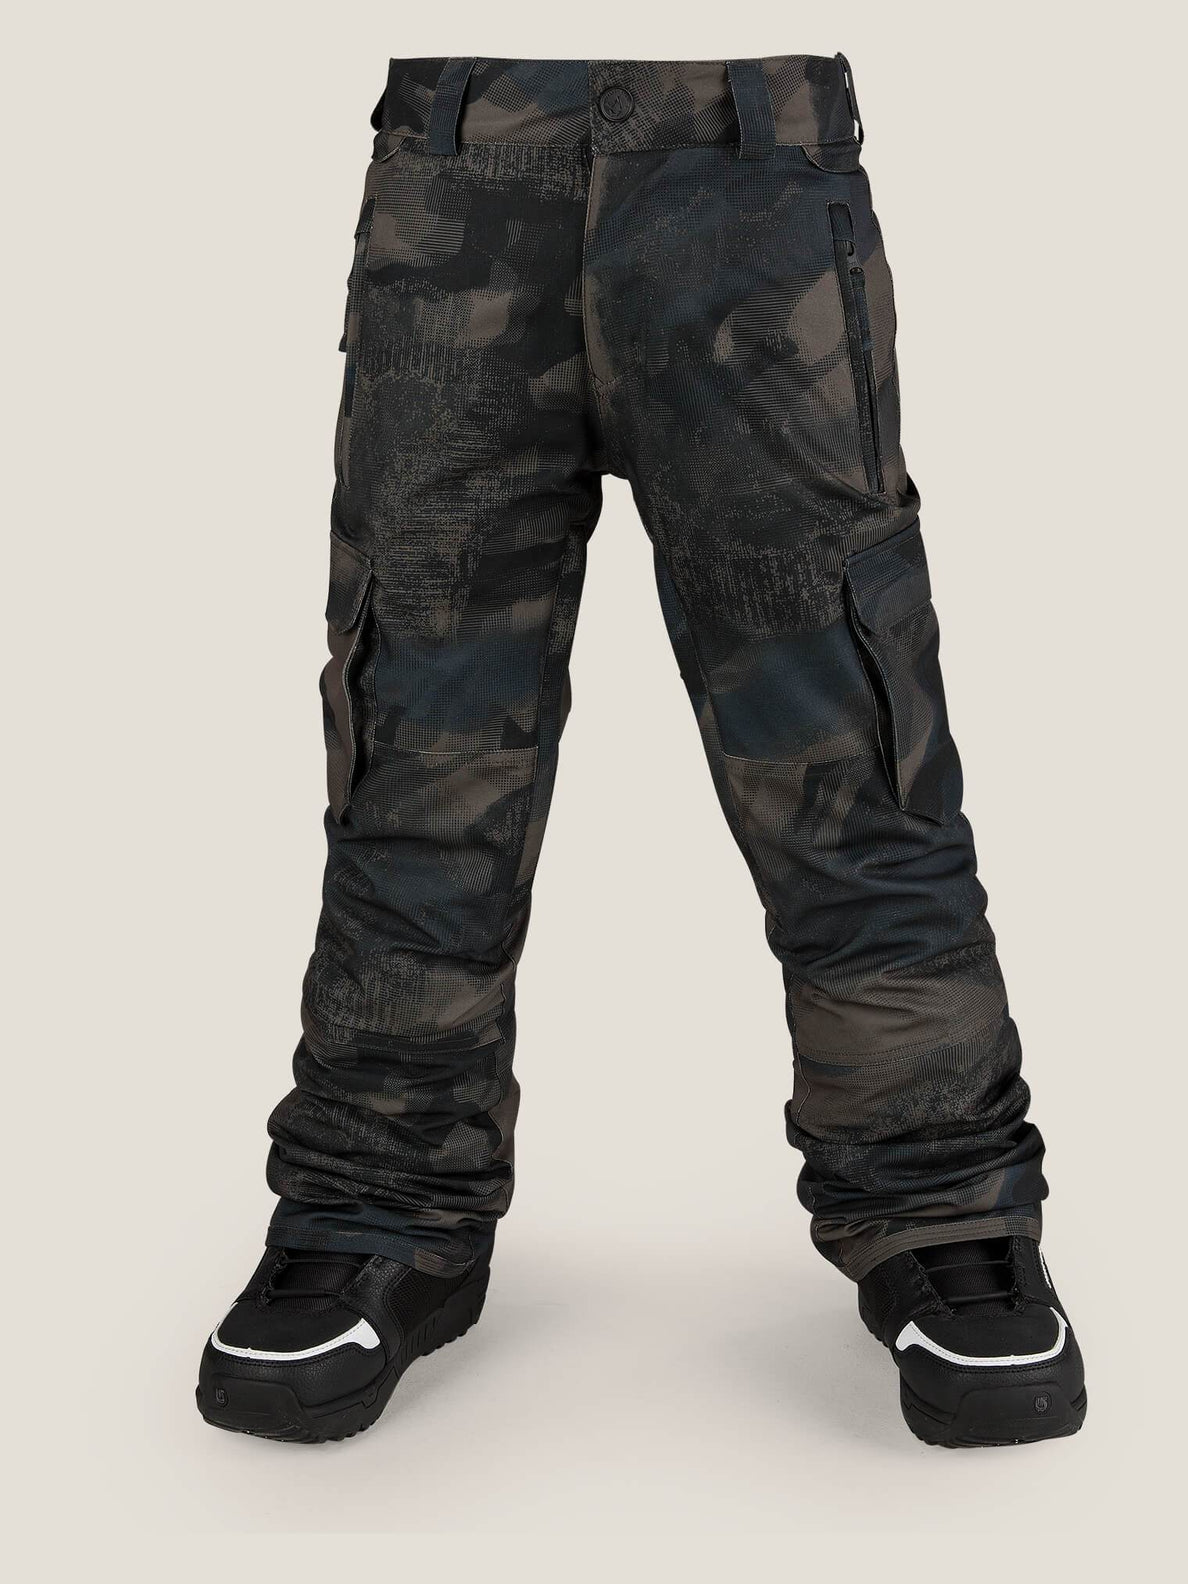 Cargo Insulated Pant In Camouflage, Front View